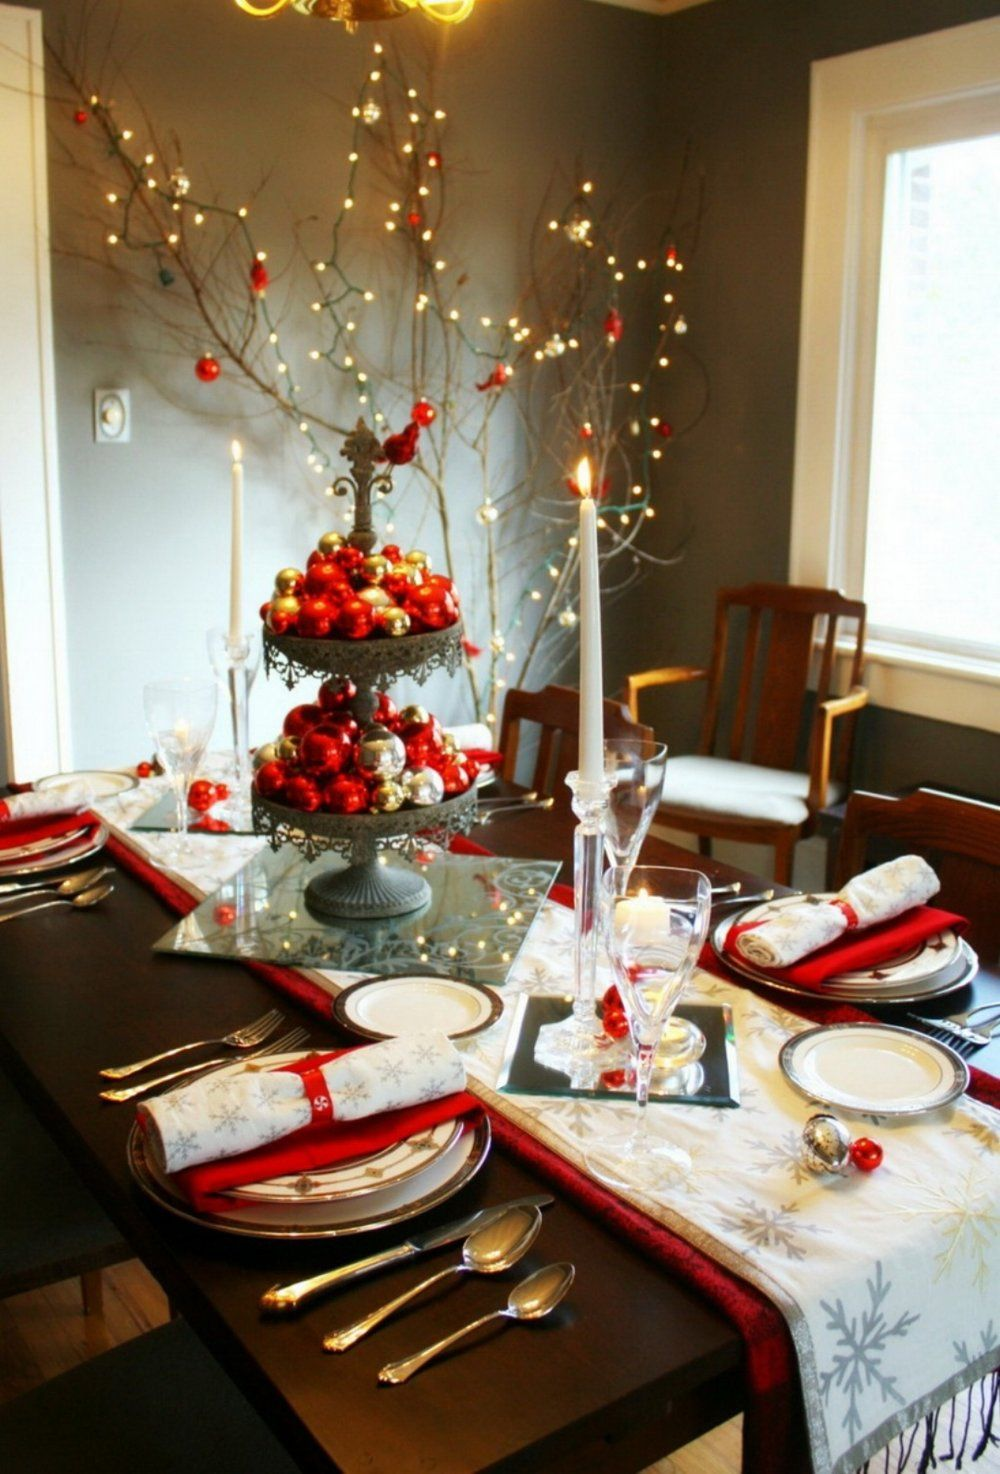 Luxurious Christmas Table Decorations Ideas Uk Christmas Table Centerpieces Christmas Dining Table Christmas Dinner Table